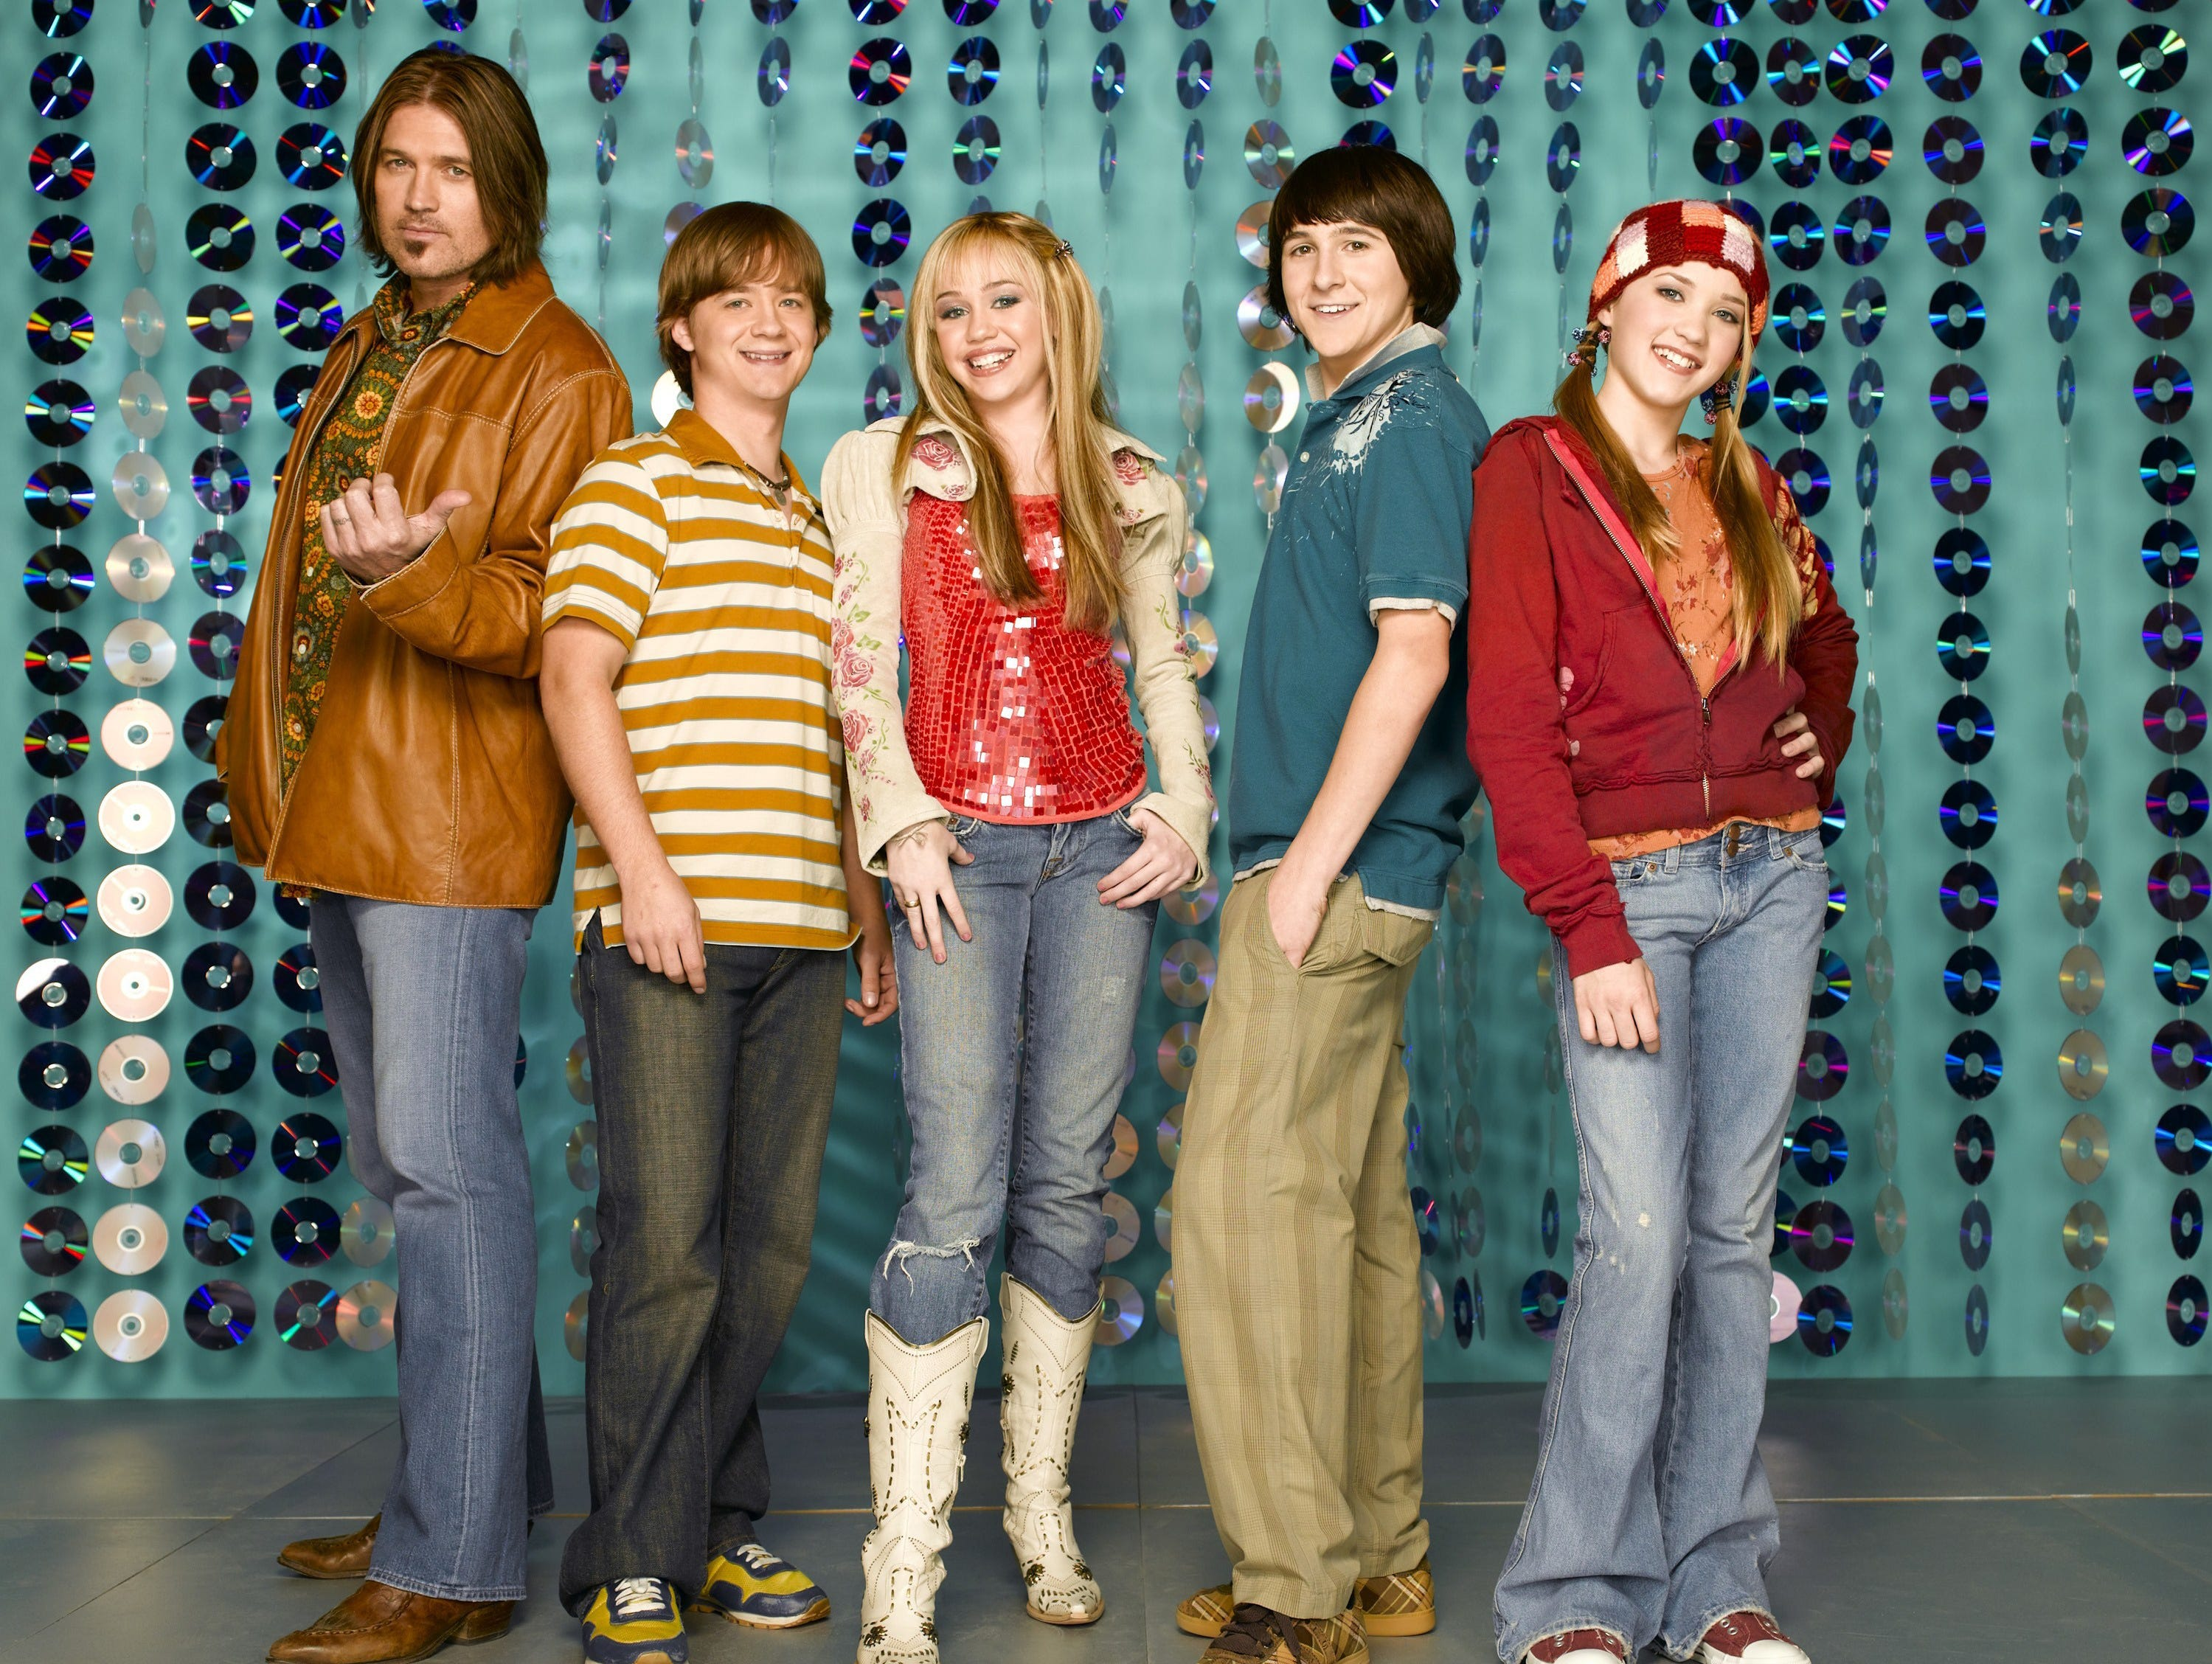 The cast of Hannah Montana. Billy Ray, Jason, Miley CYRUS, Mitchel and EMILY OSMENT. --- DATE TAKEN: rec'd 03/06  No Byline   Disney Channel        HO      - handout   ORG XMIT: ZX46131